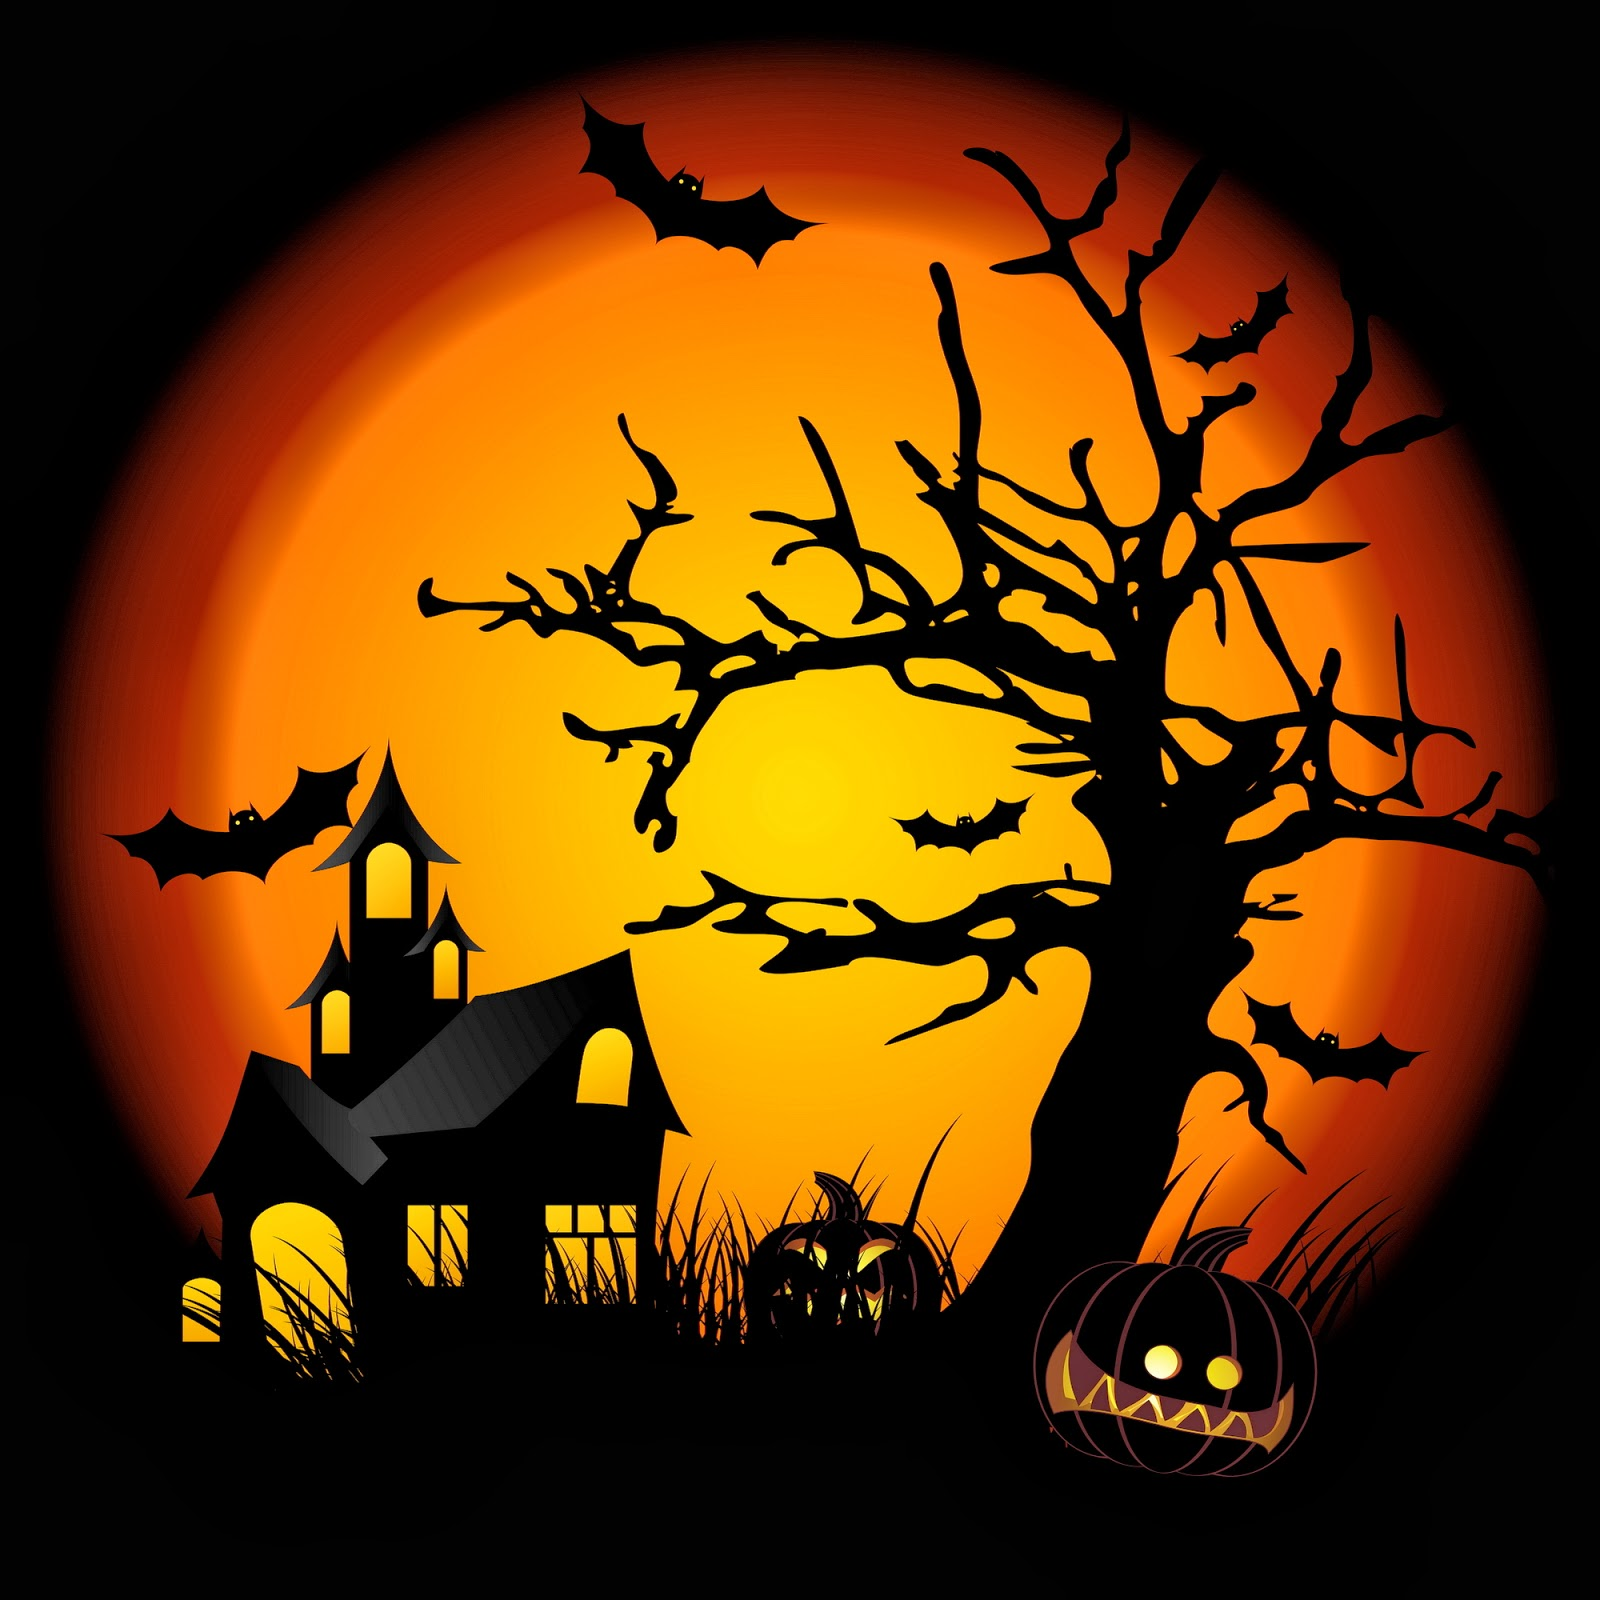 free bar trivia questions 10 more free halloween trivia questions free bar trivia questions 10 more free halloween trivia questions